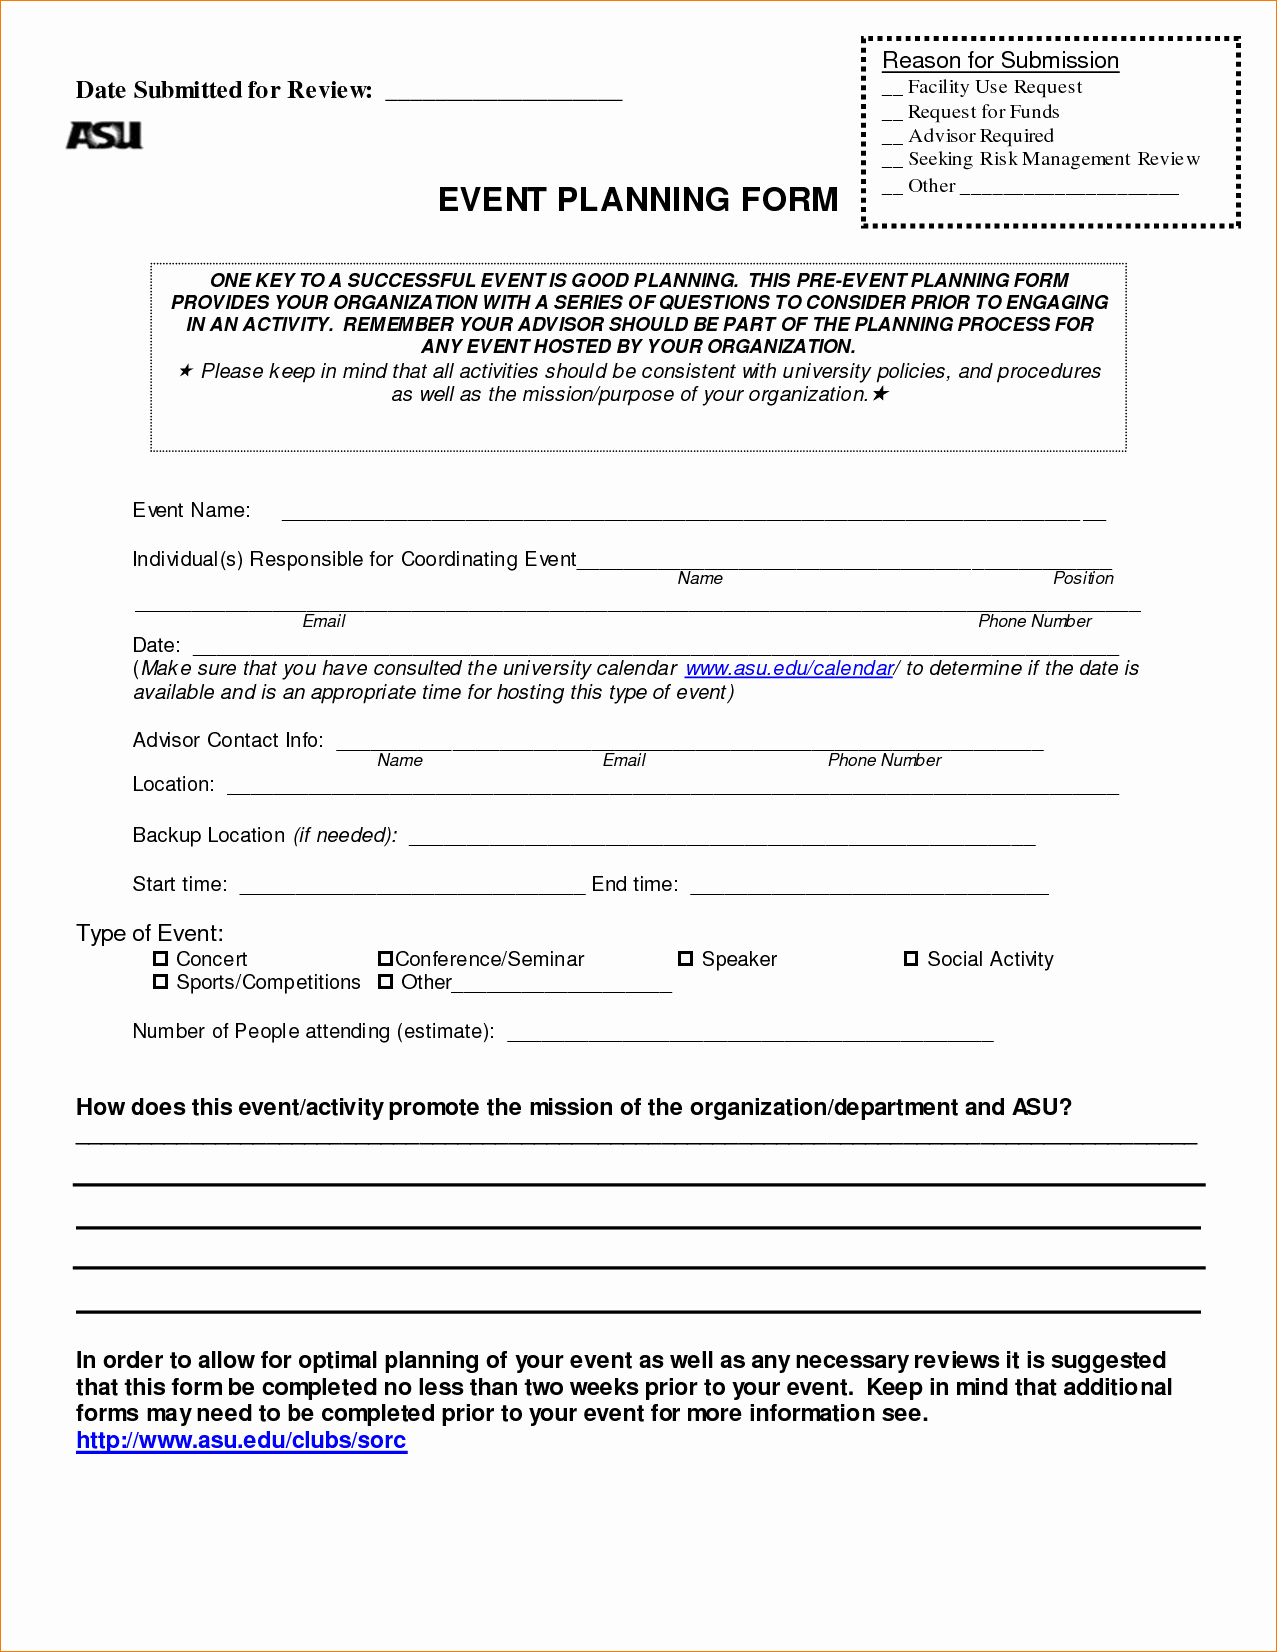 Party Planner Contract Template Lovely 015 event Planning Contracts Template Contract Sample